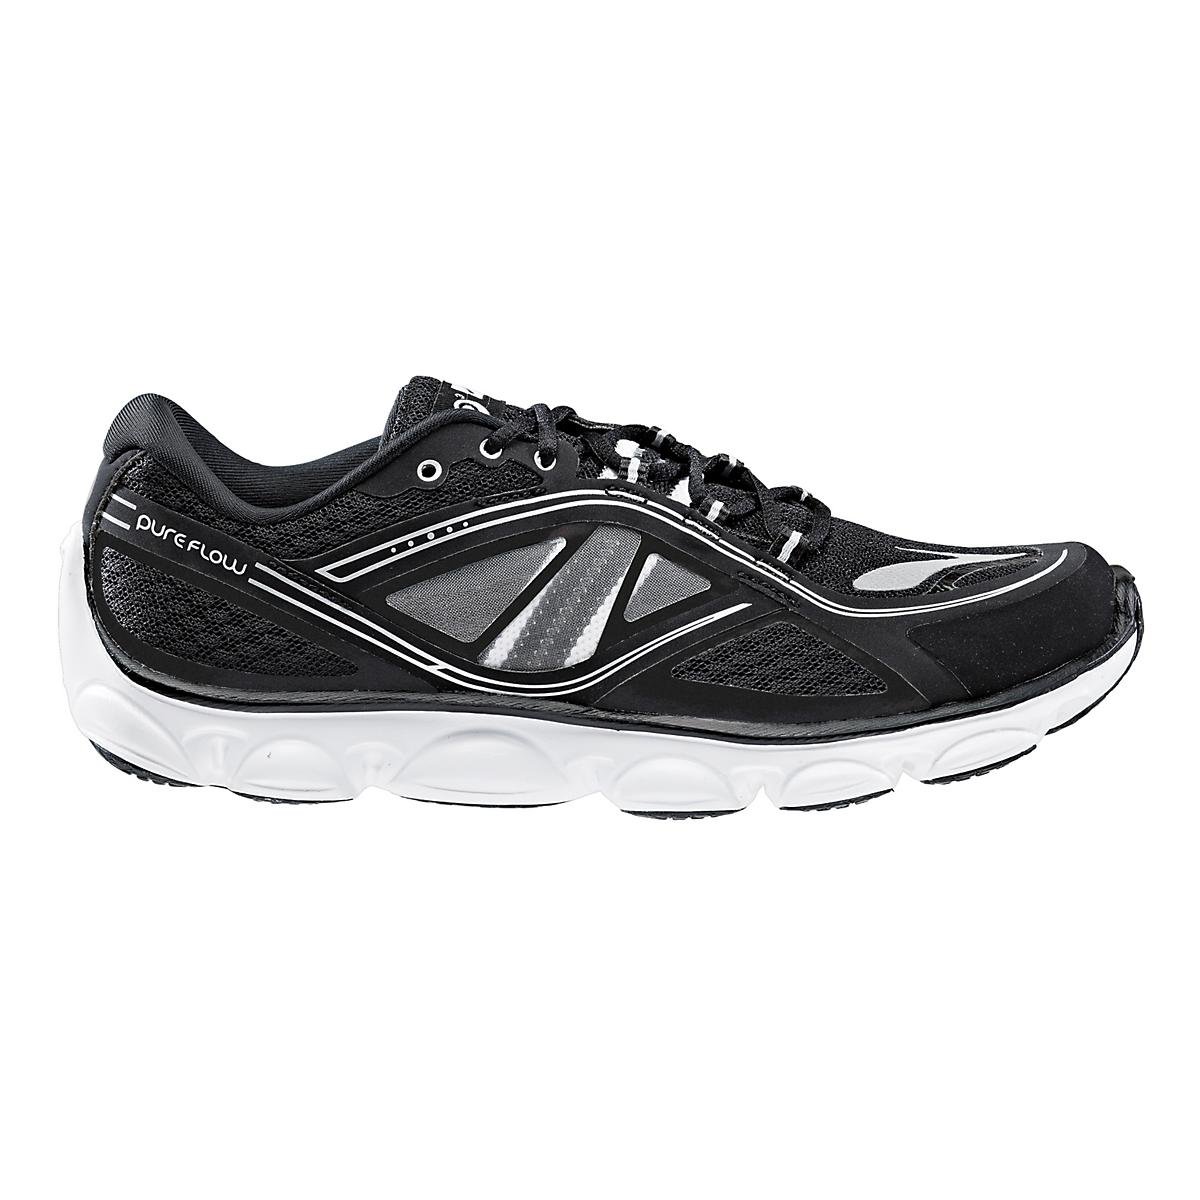 4b6f0c90a70 Details about Brooks Pure Flow 3 Kids Running Shoes - Sports - Black White  - RRP 50 GBP